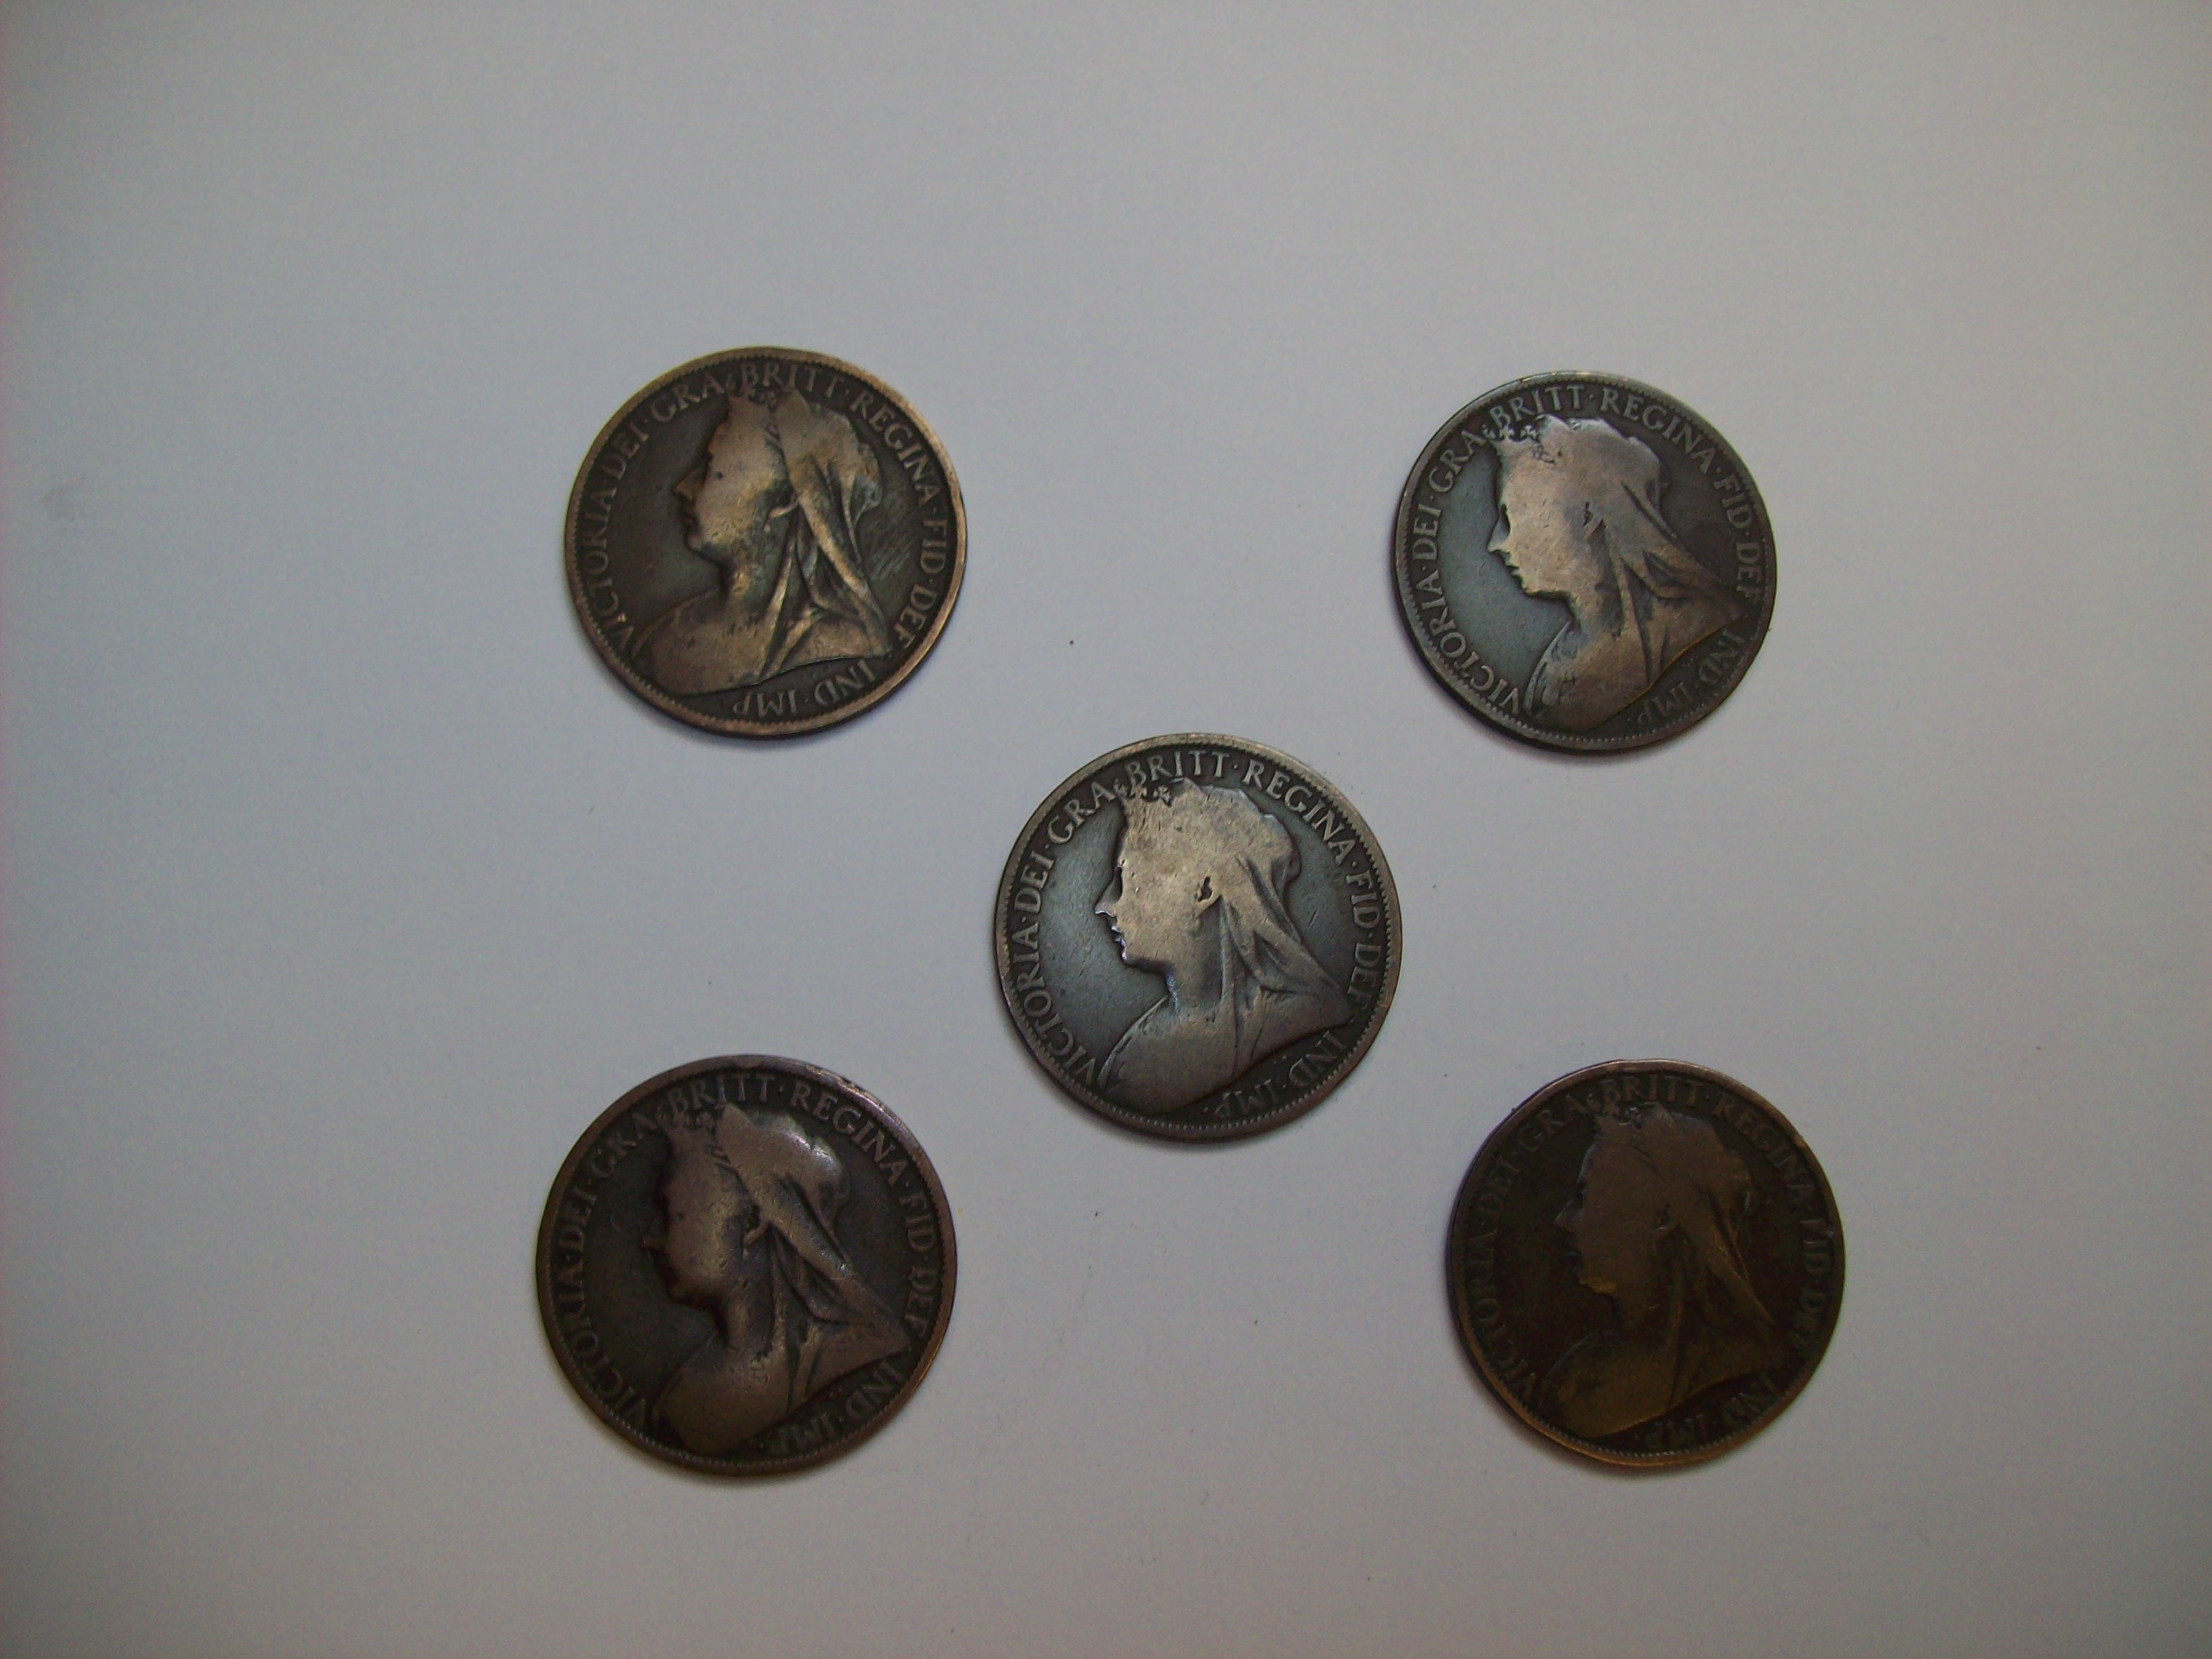 Expanded Victorian Penny Shell plus 4 matching coins